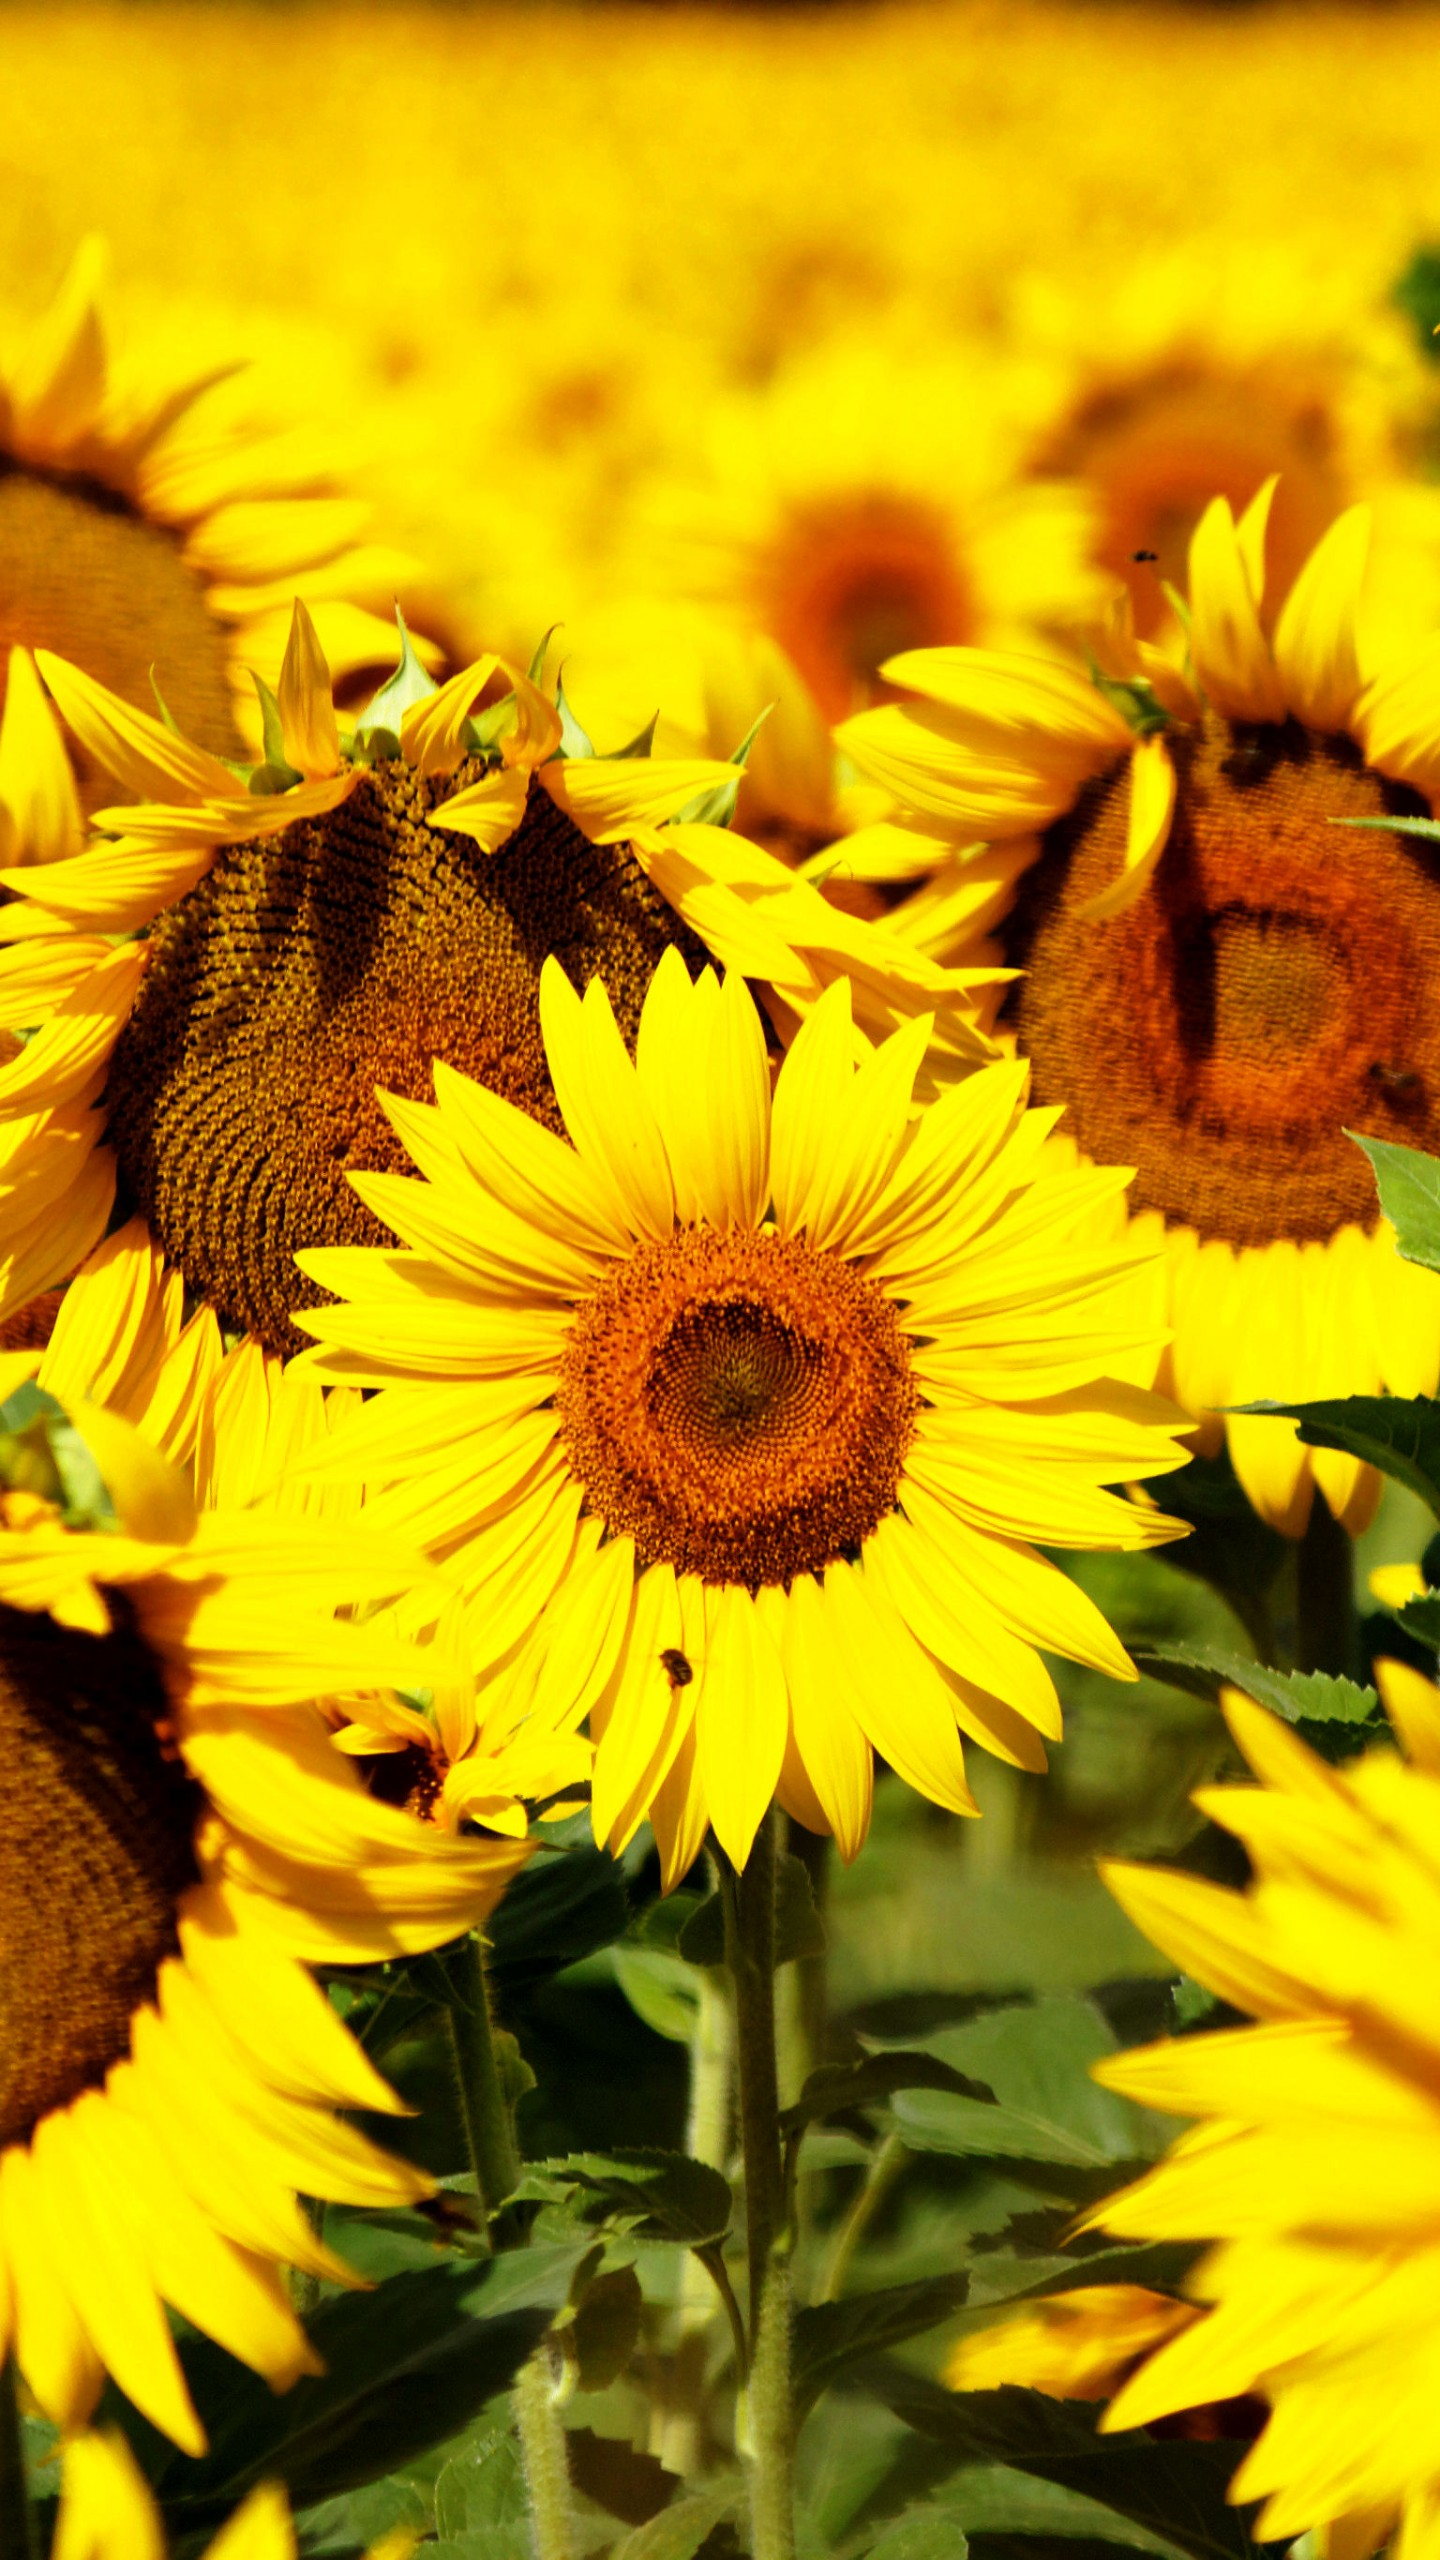 Wallpaper Sunflowers 5k 4k Wallpaper 8k Flowers Field